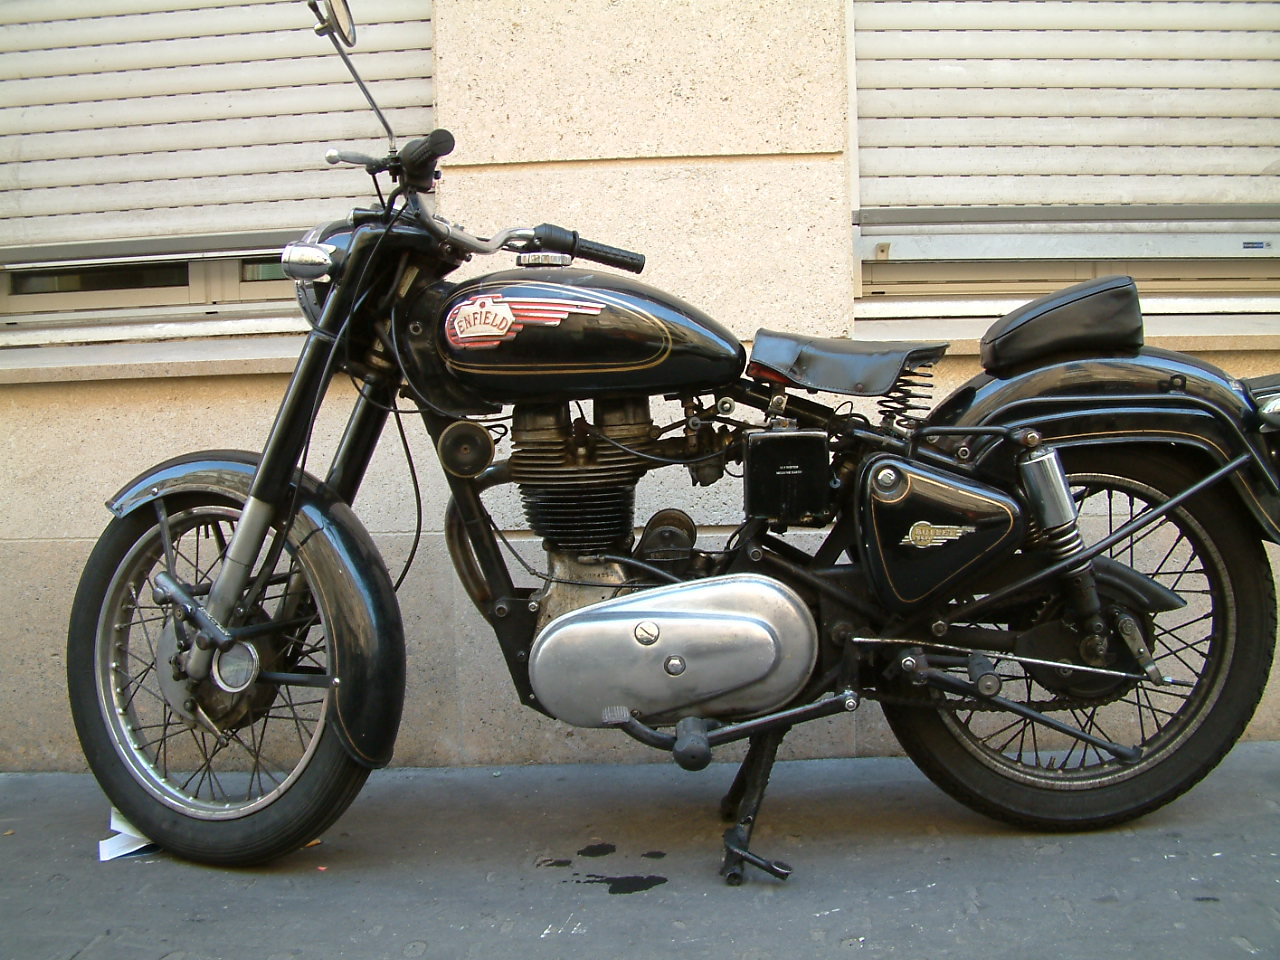 Royal Enfield Bullet 500 Army images #127487